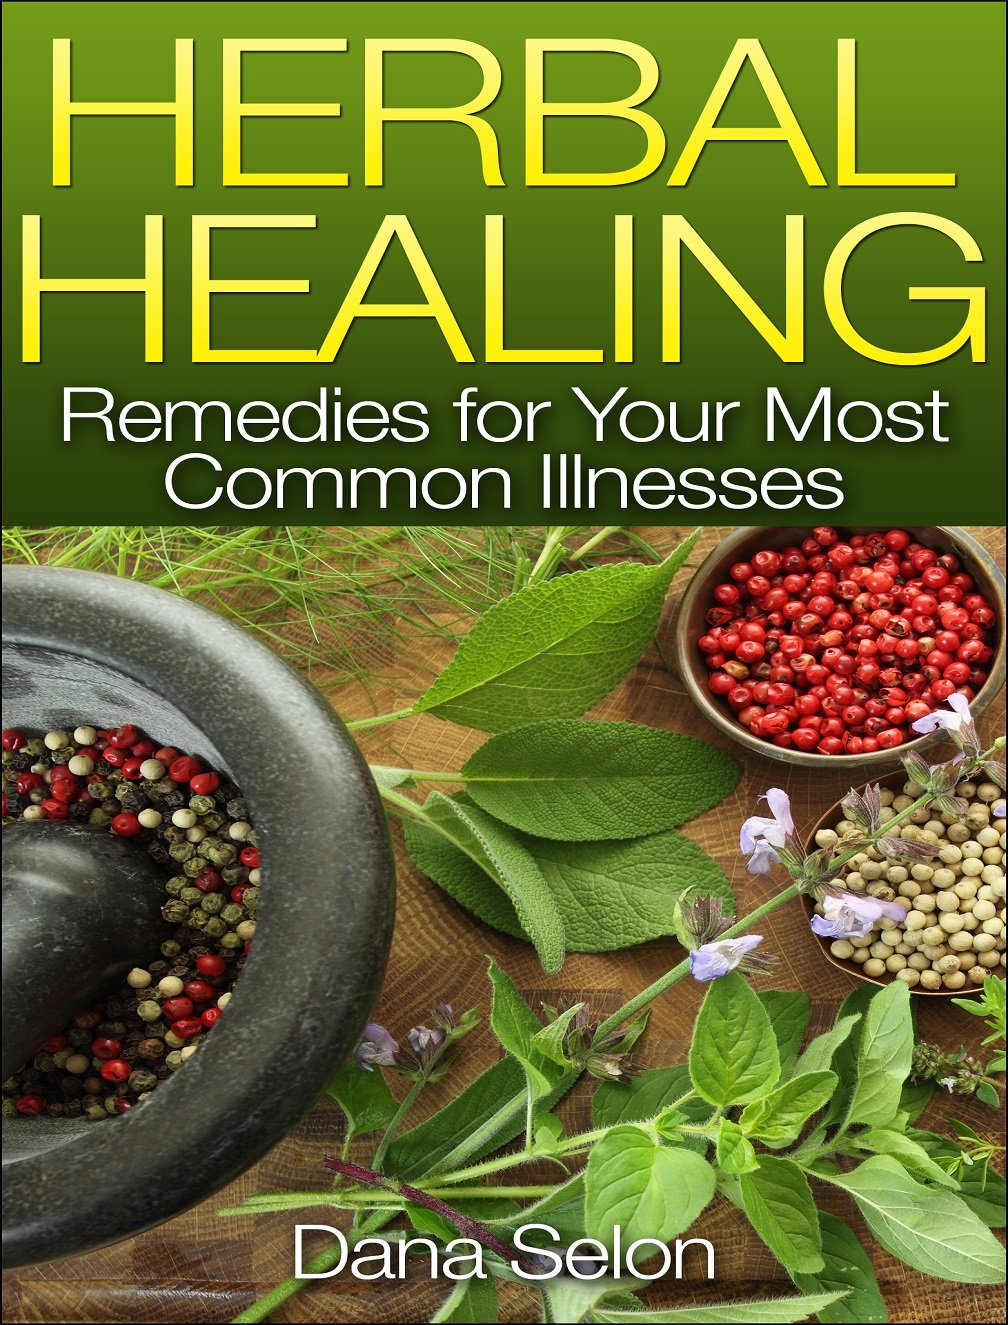 http://www.amazon.com/Herbal-Healing-Remedies-Common-Illnesses-ebook/dp/B00JVTGYHY/ref=as_sl_pc_ss_til?tag=lettfromahome-20&linkCode=w01&linkId=N6DK2KKLIEMYJ3UJ&creativeASIN=B00JVTGYHY